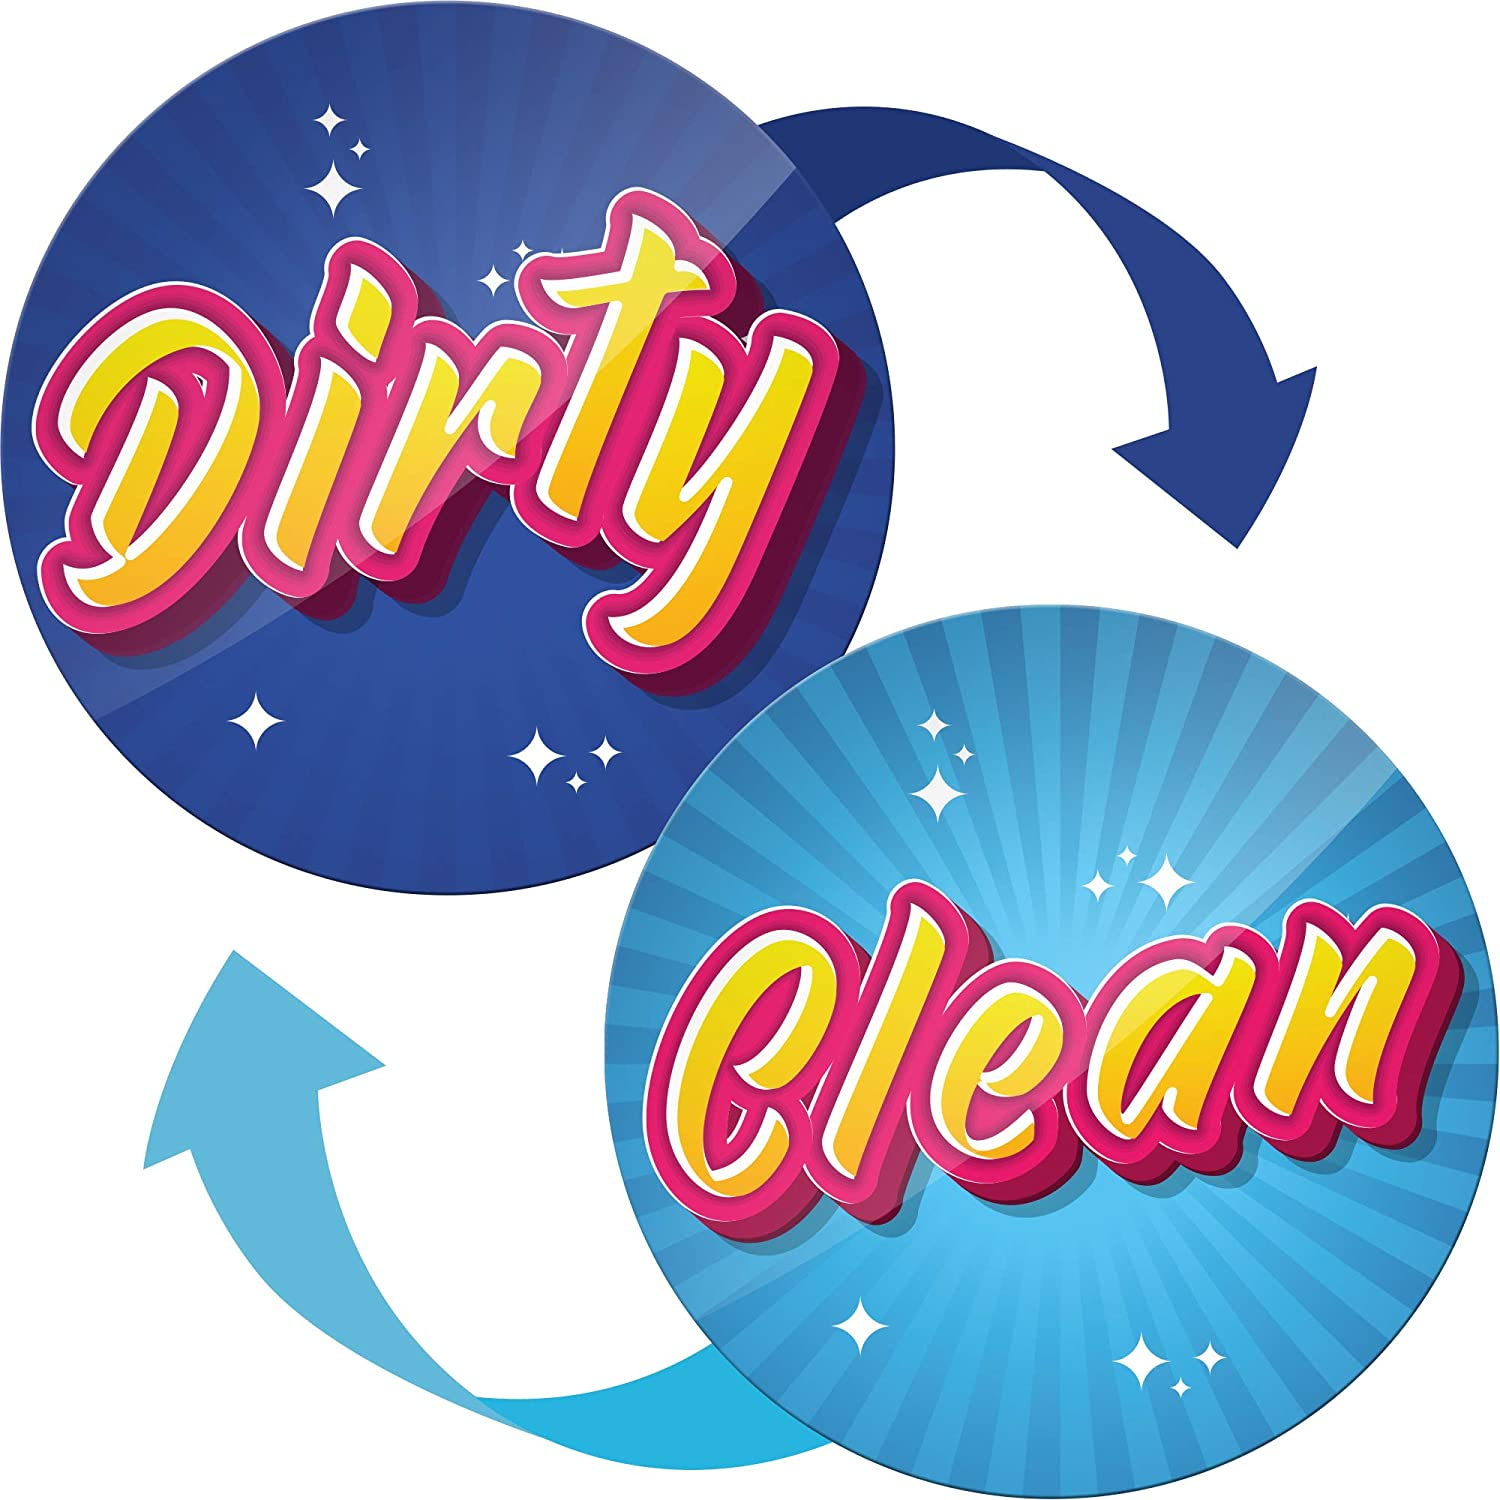 Dishwasher Magnet Clean Dirty Sign - Kitchen Magnets Ideal as Gifts for Mom and Dad from Son and Daughter - Housewarming Gifts New Home - Clean Dirty Dishwasher Magnet Flip